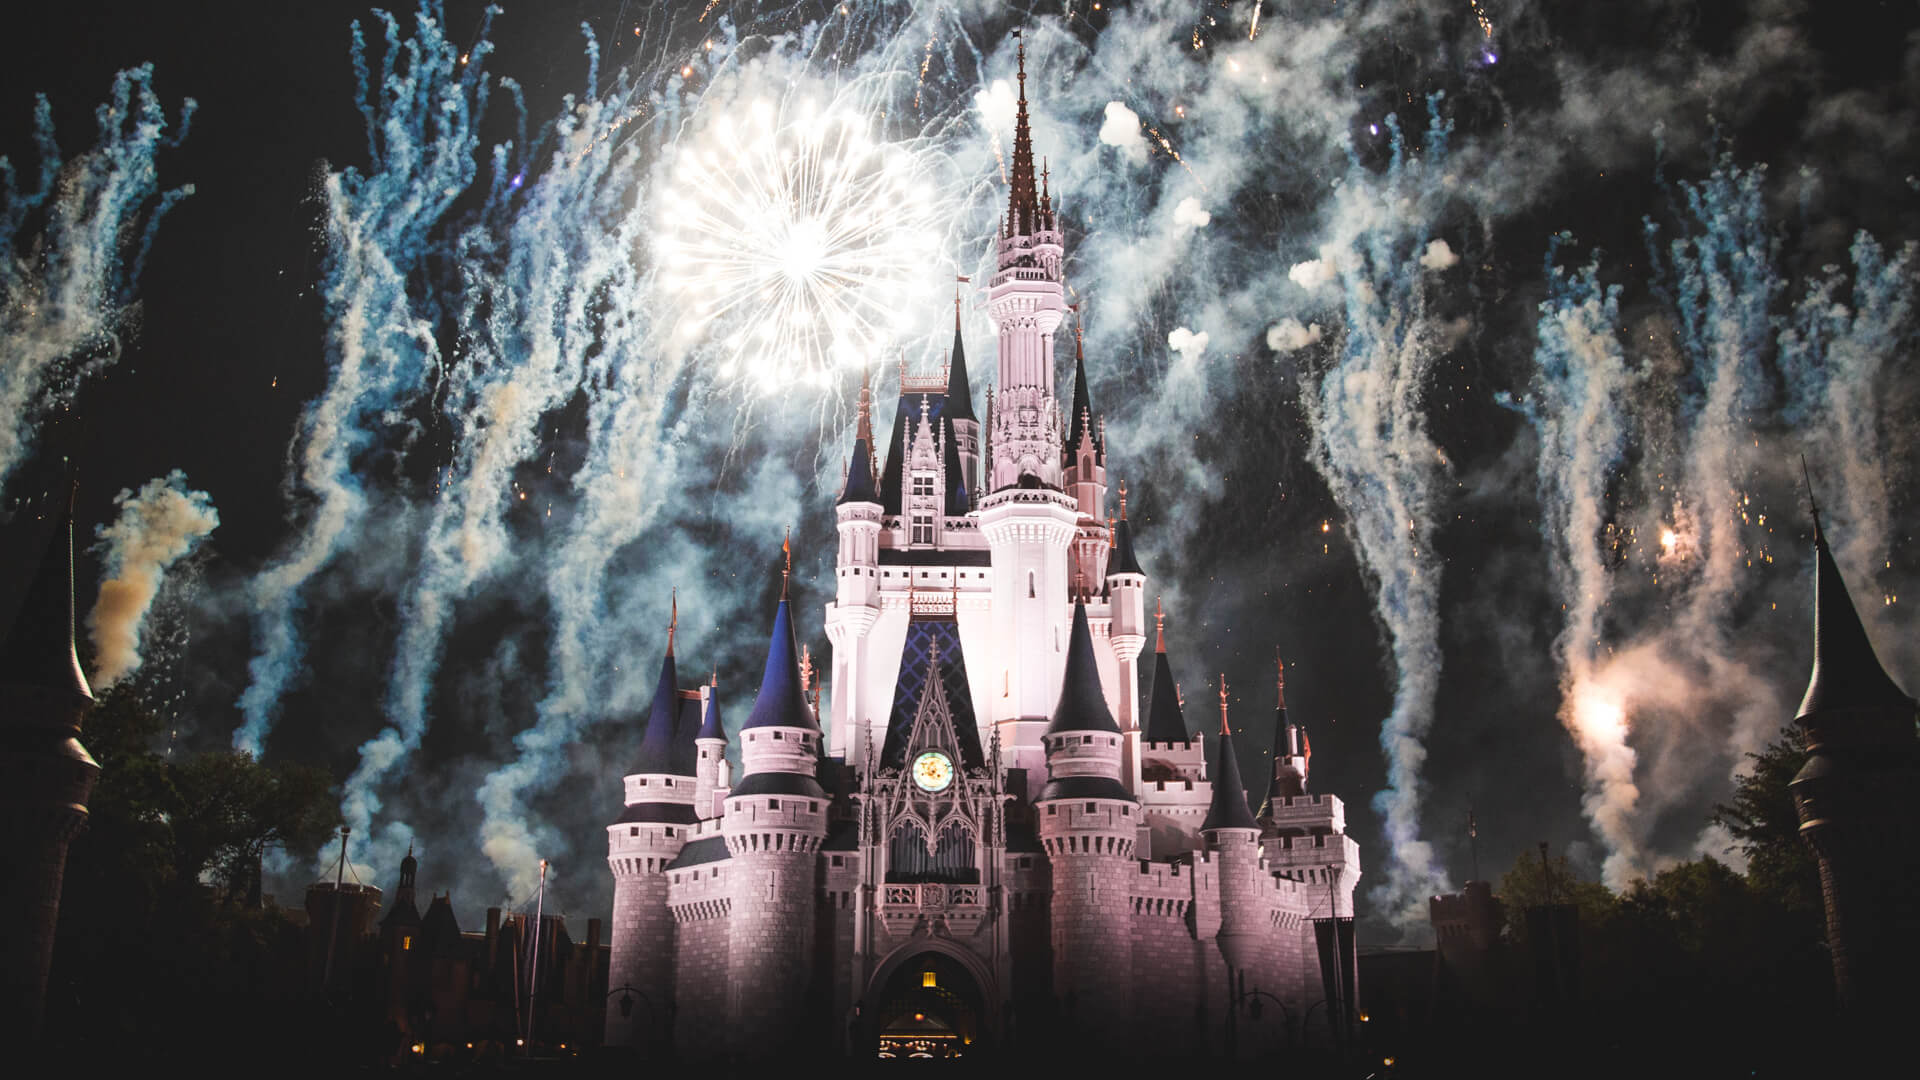 Here's How Much It Cost To Go To Disney World the Year You Were Born